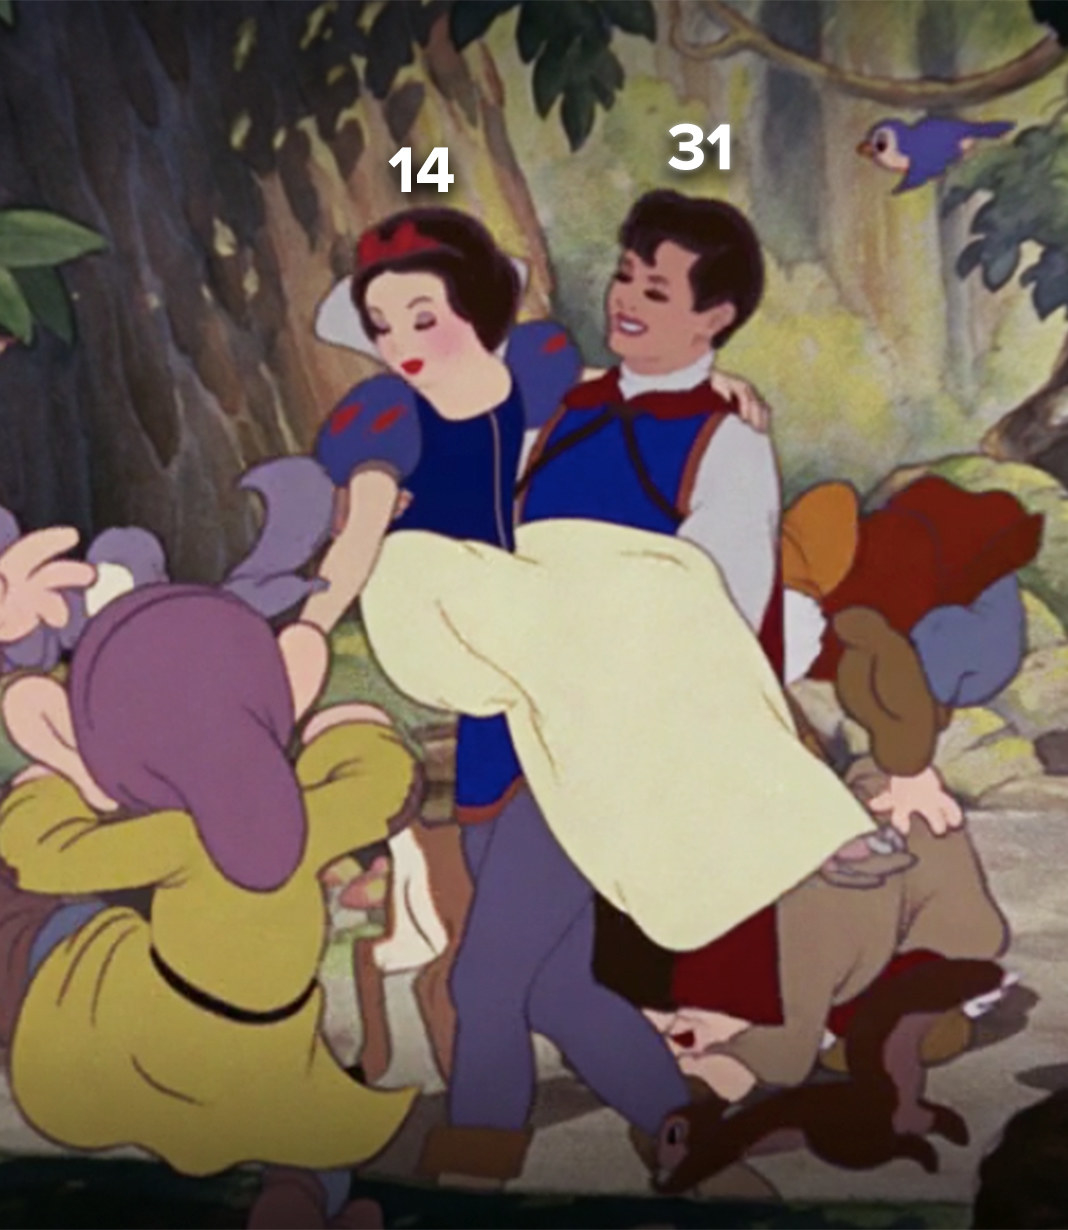 Snow White is 14, and Prince Florian is 31